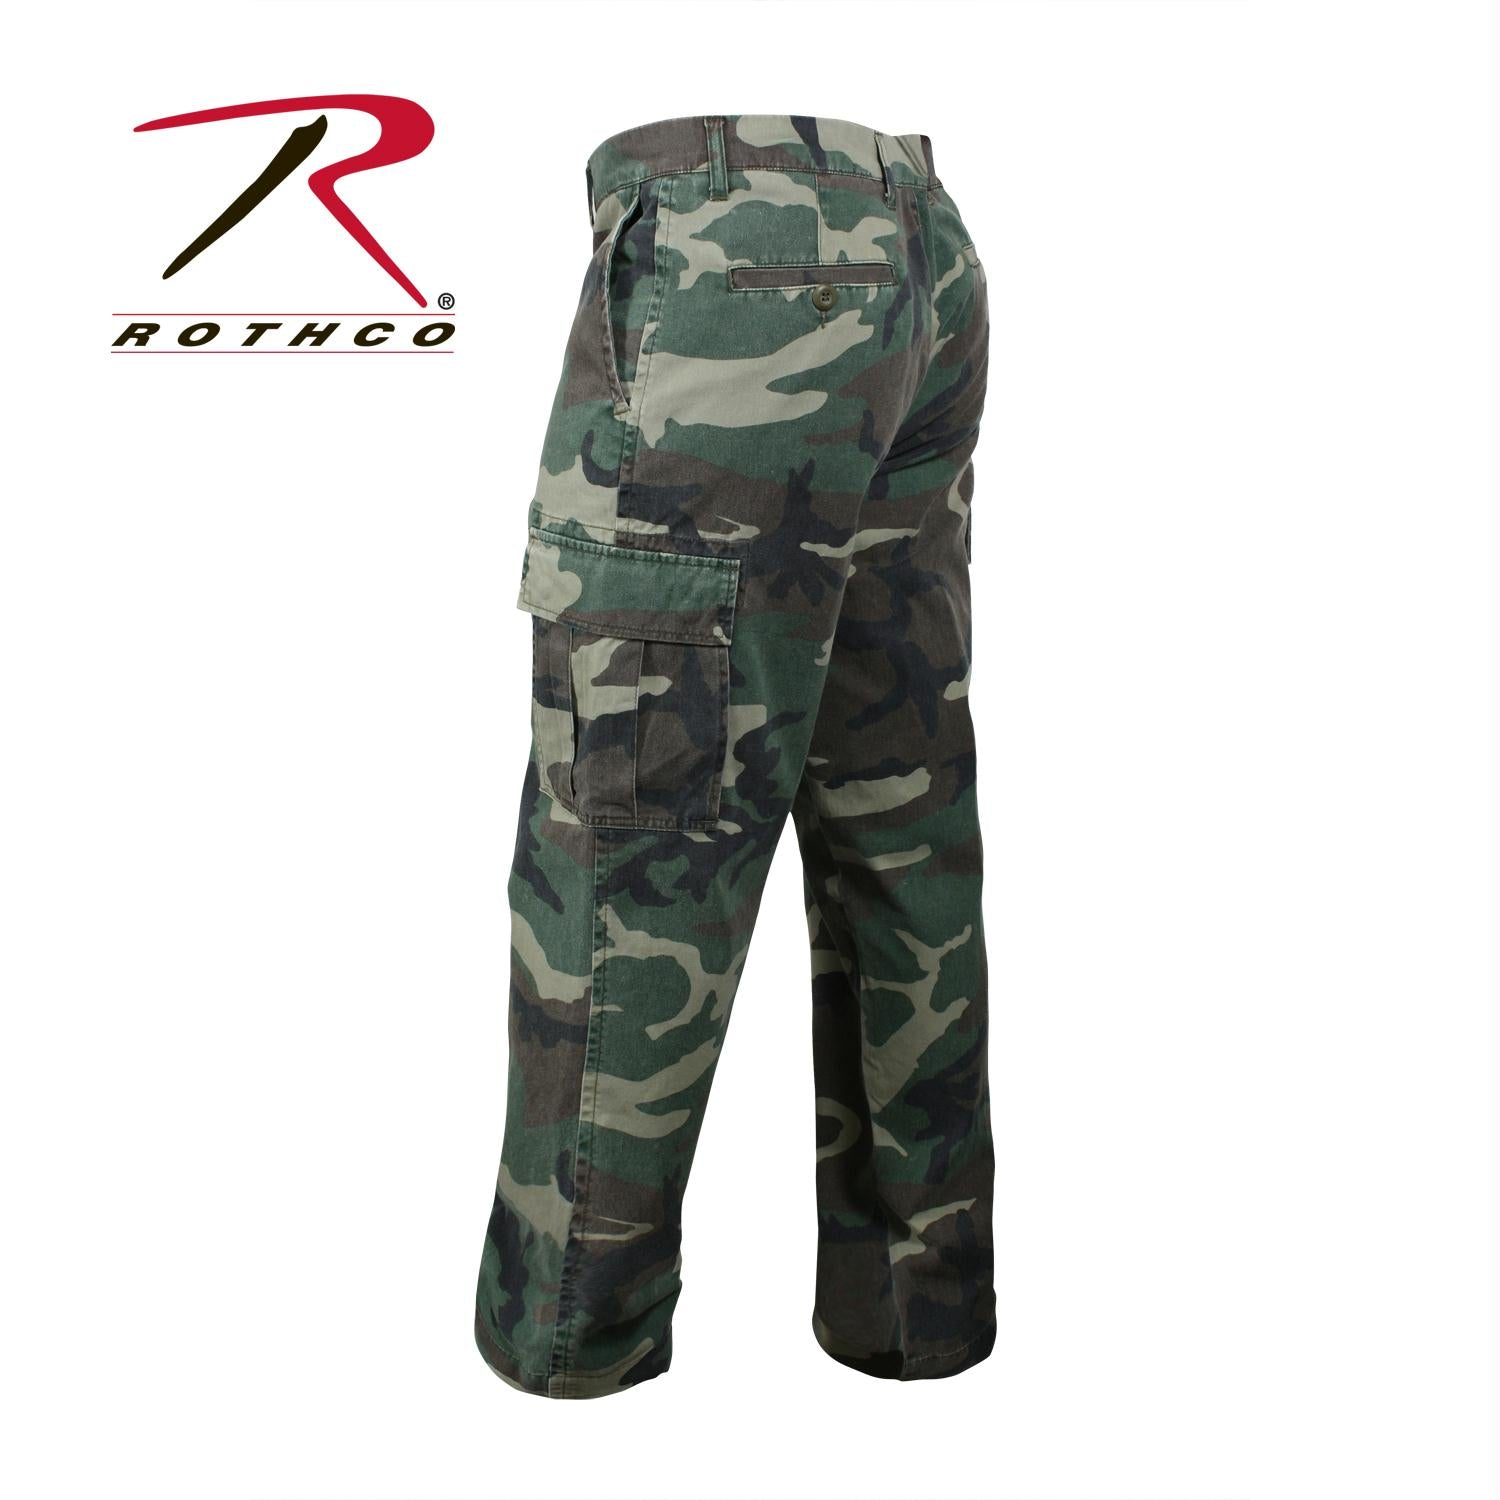 Rothco Vintage 6-Pocket Flat Front Fatigue Pants - Woodland Camo / 42